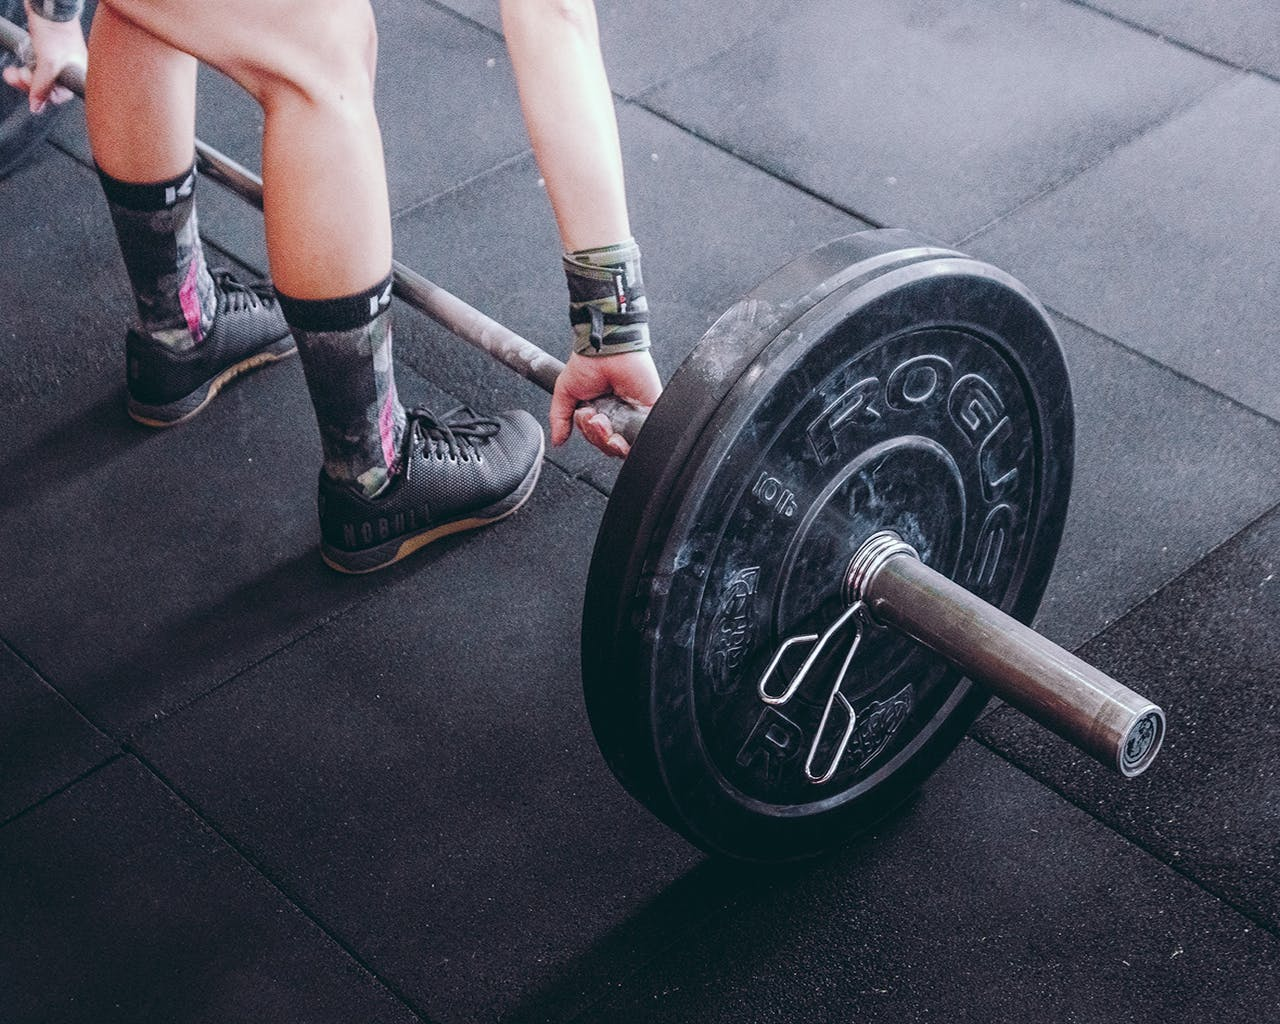 Burn Calories, Improve Your Endurance: Strength Training Exercises To Add To Your Routine